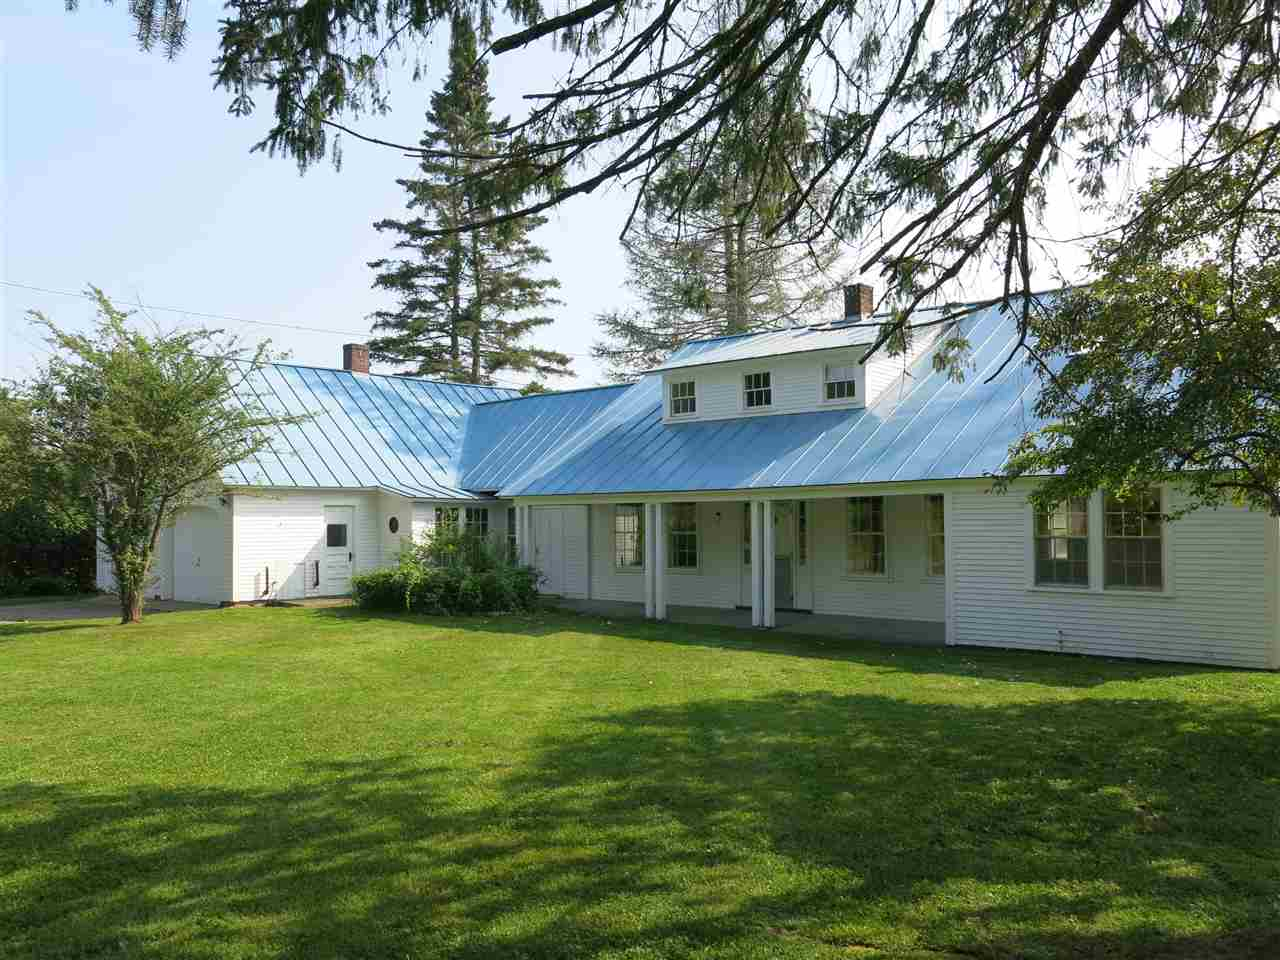 WEST FAIRLEE VT Home for sale $$150,000 | $69 per sq.ft.